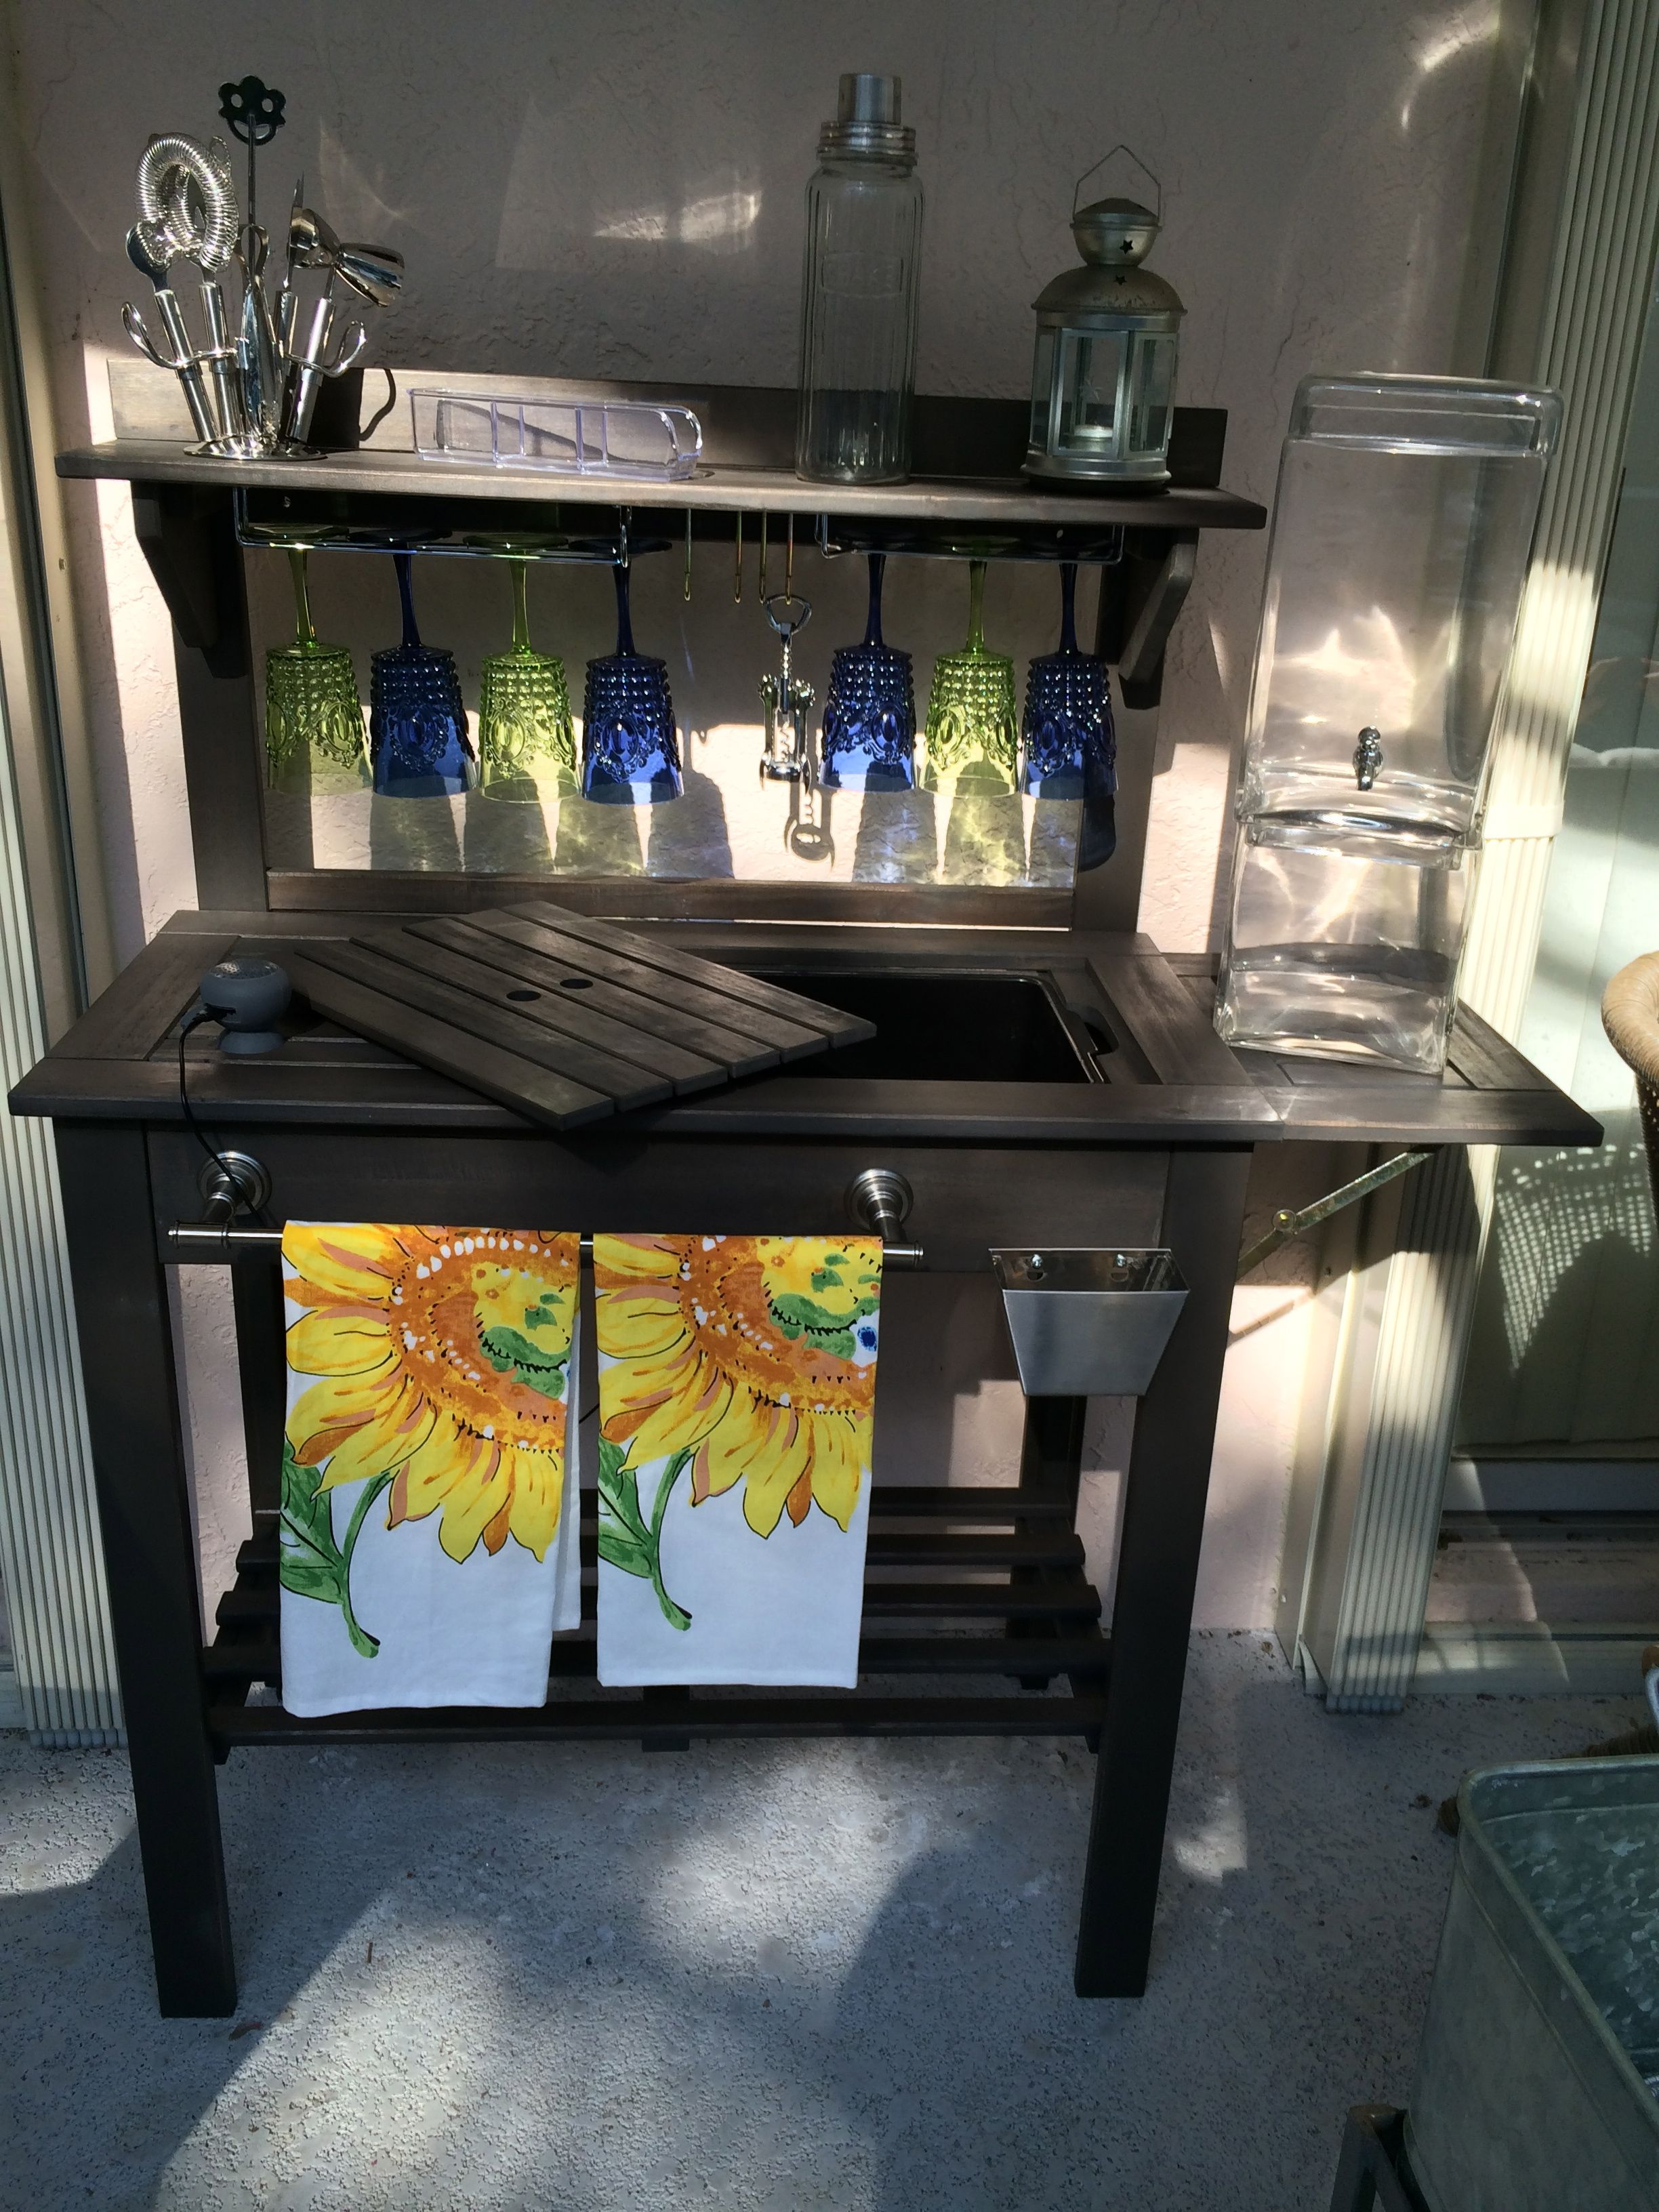 Others Bed Bath And Beyond Bathroom Scales For Use In The: World Market Potting Bench Turned Bar. Added Towel Bar